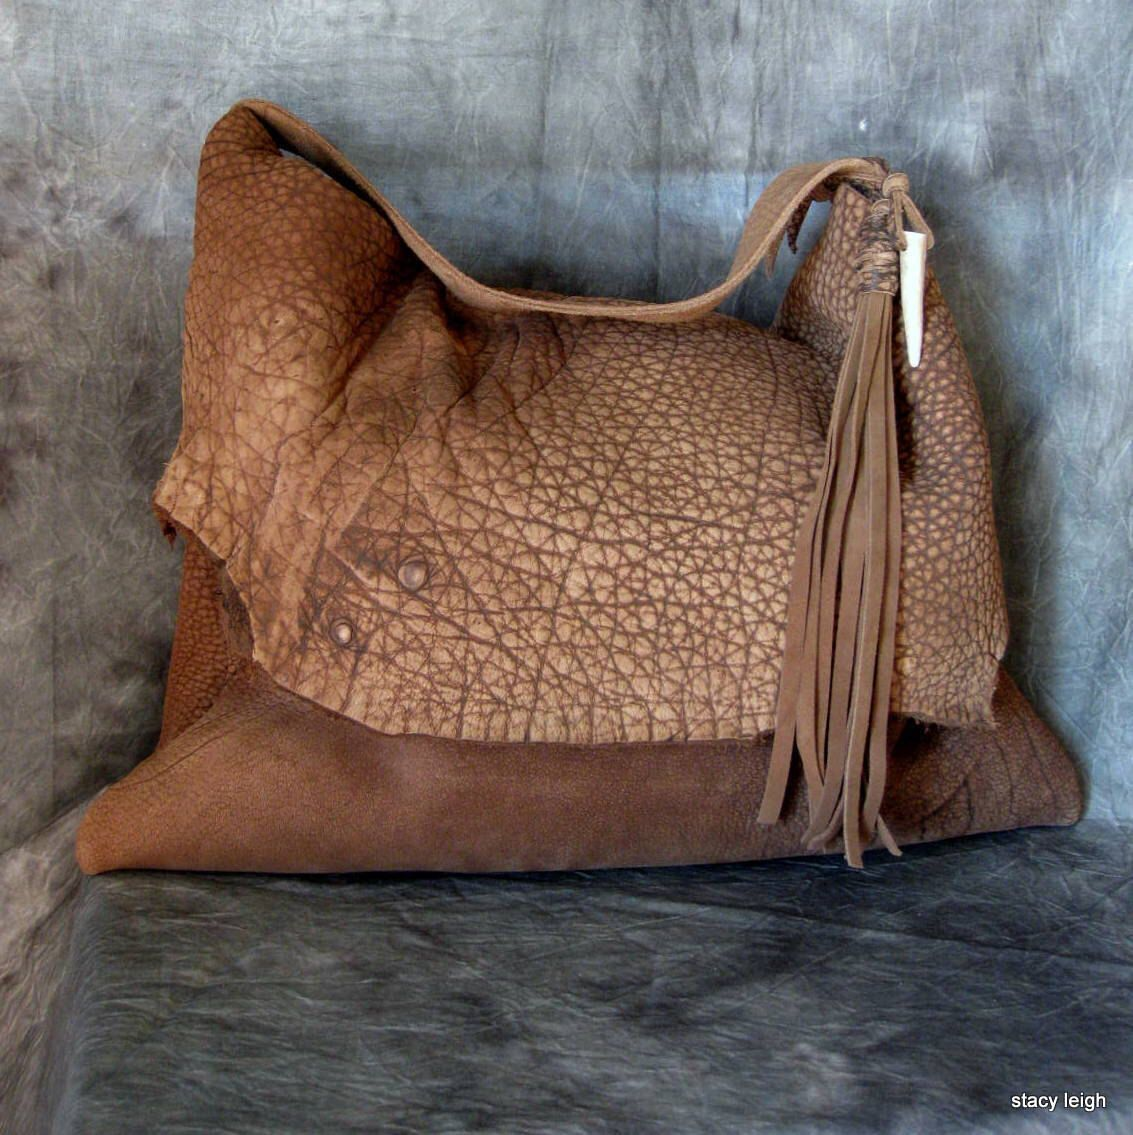 Rustic Steer Hide Leather Bag with Antler Tip by Stacy Leigh by stacyleigh on Etsy https://www.etsy.com/listing/270675655/rustic-steer-hide-leather-bag-with